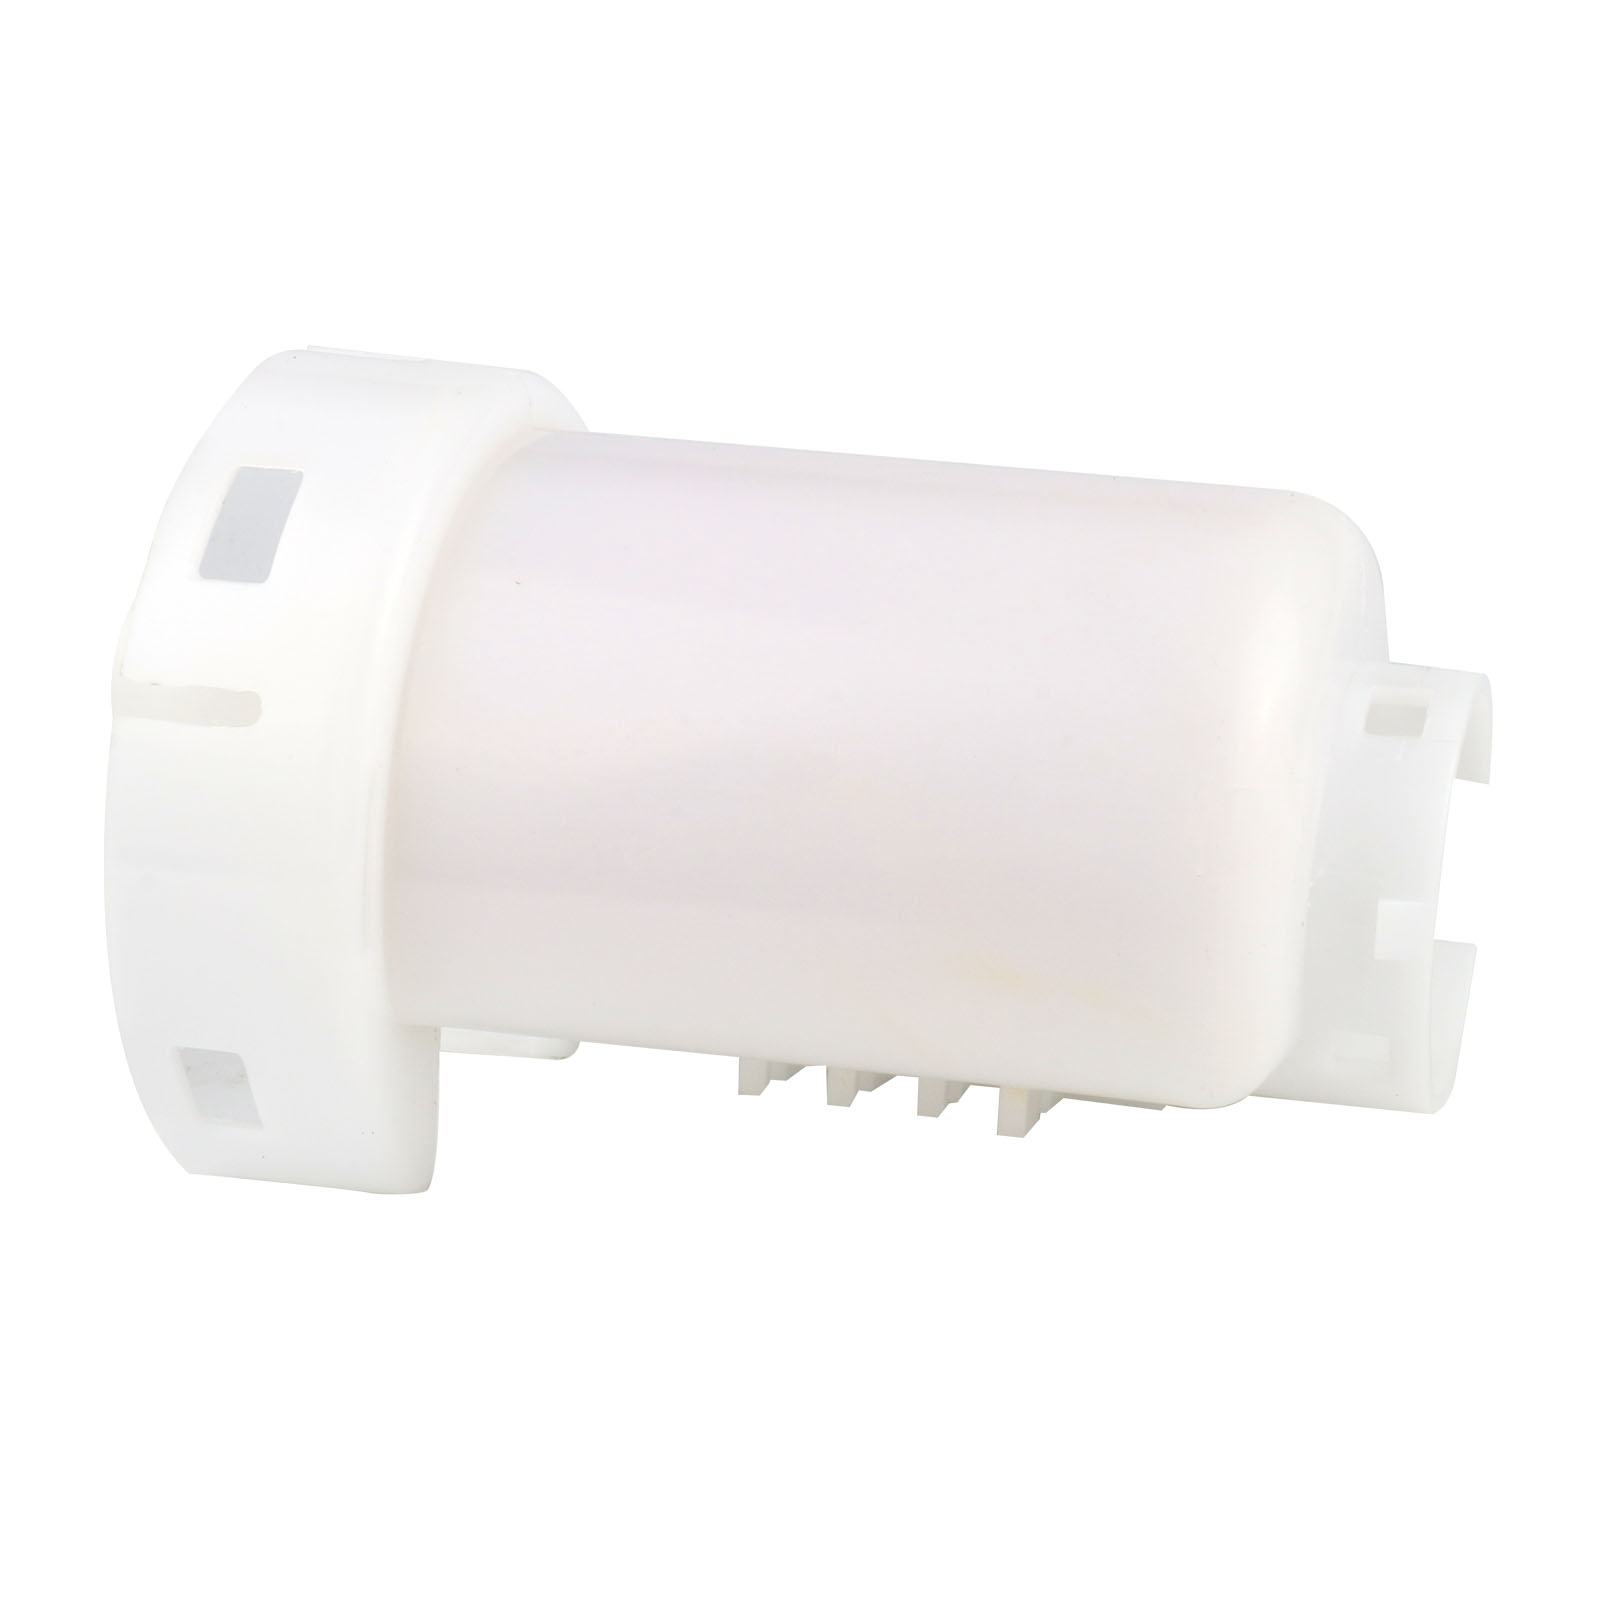 car gas gasoline petrol fuel filter oe 23300 23040 replacement parts for toyota daihatsu charade faw [ 1600 x 1600 Pixel ]